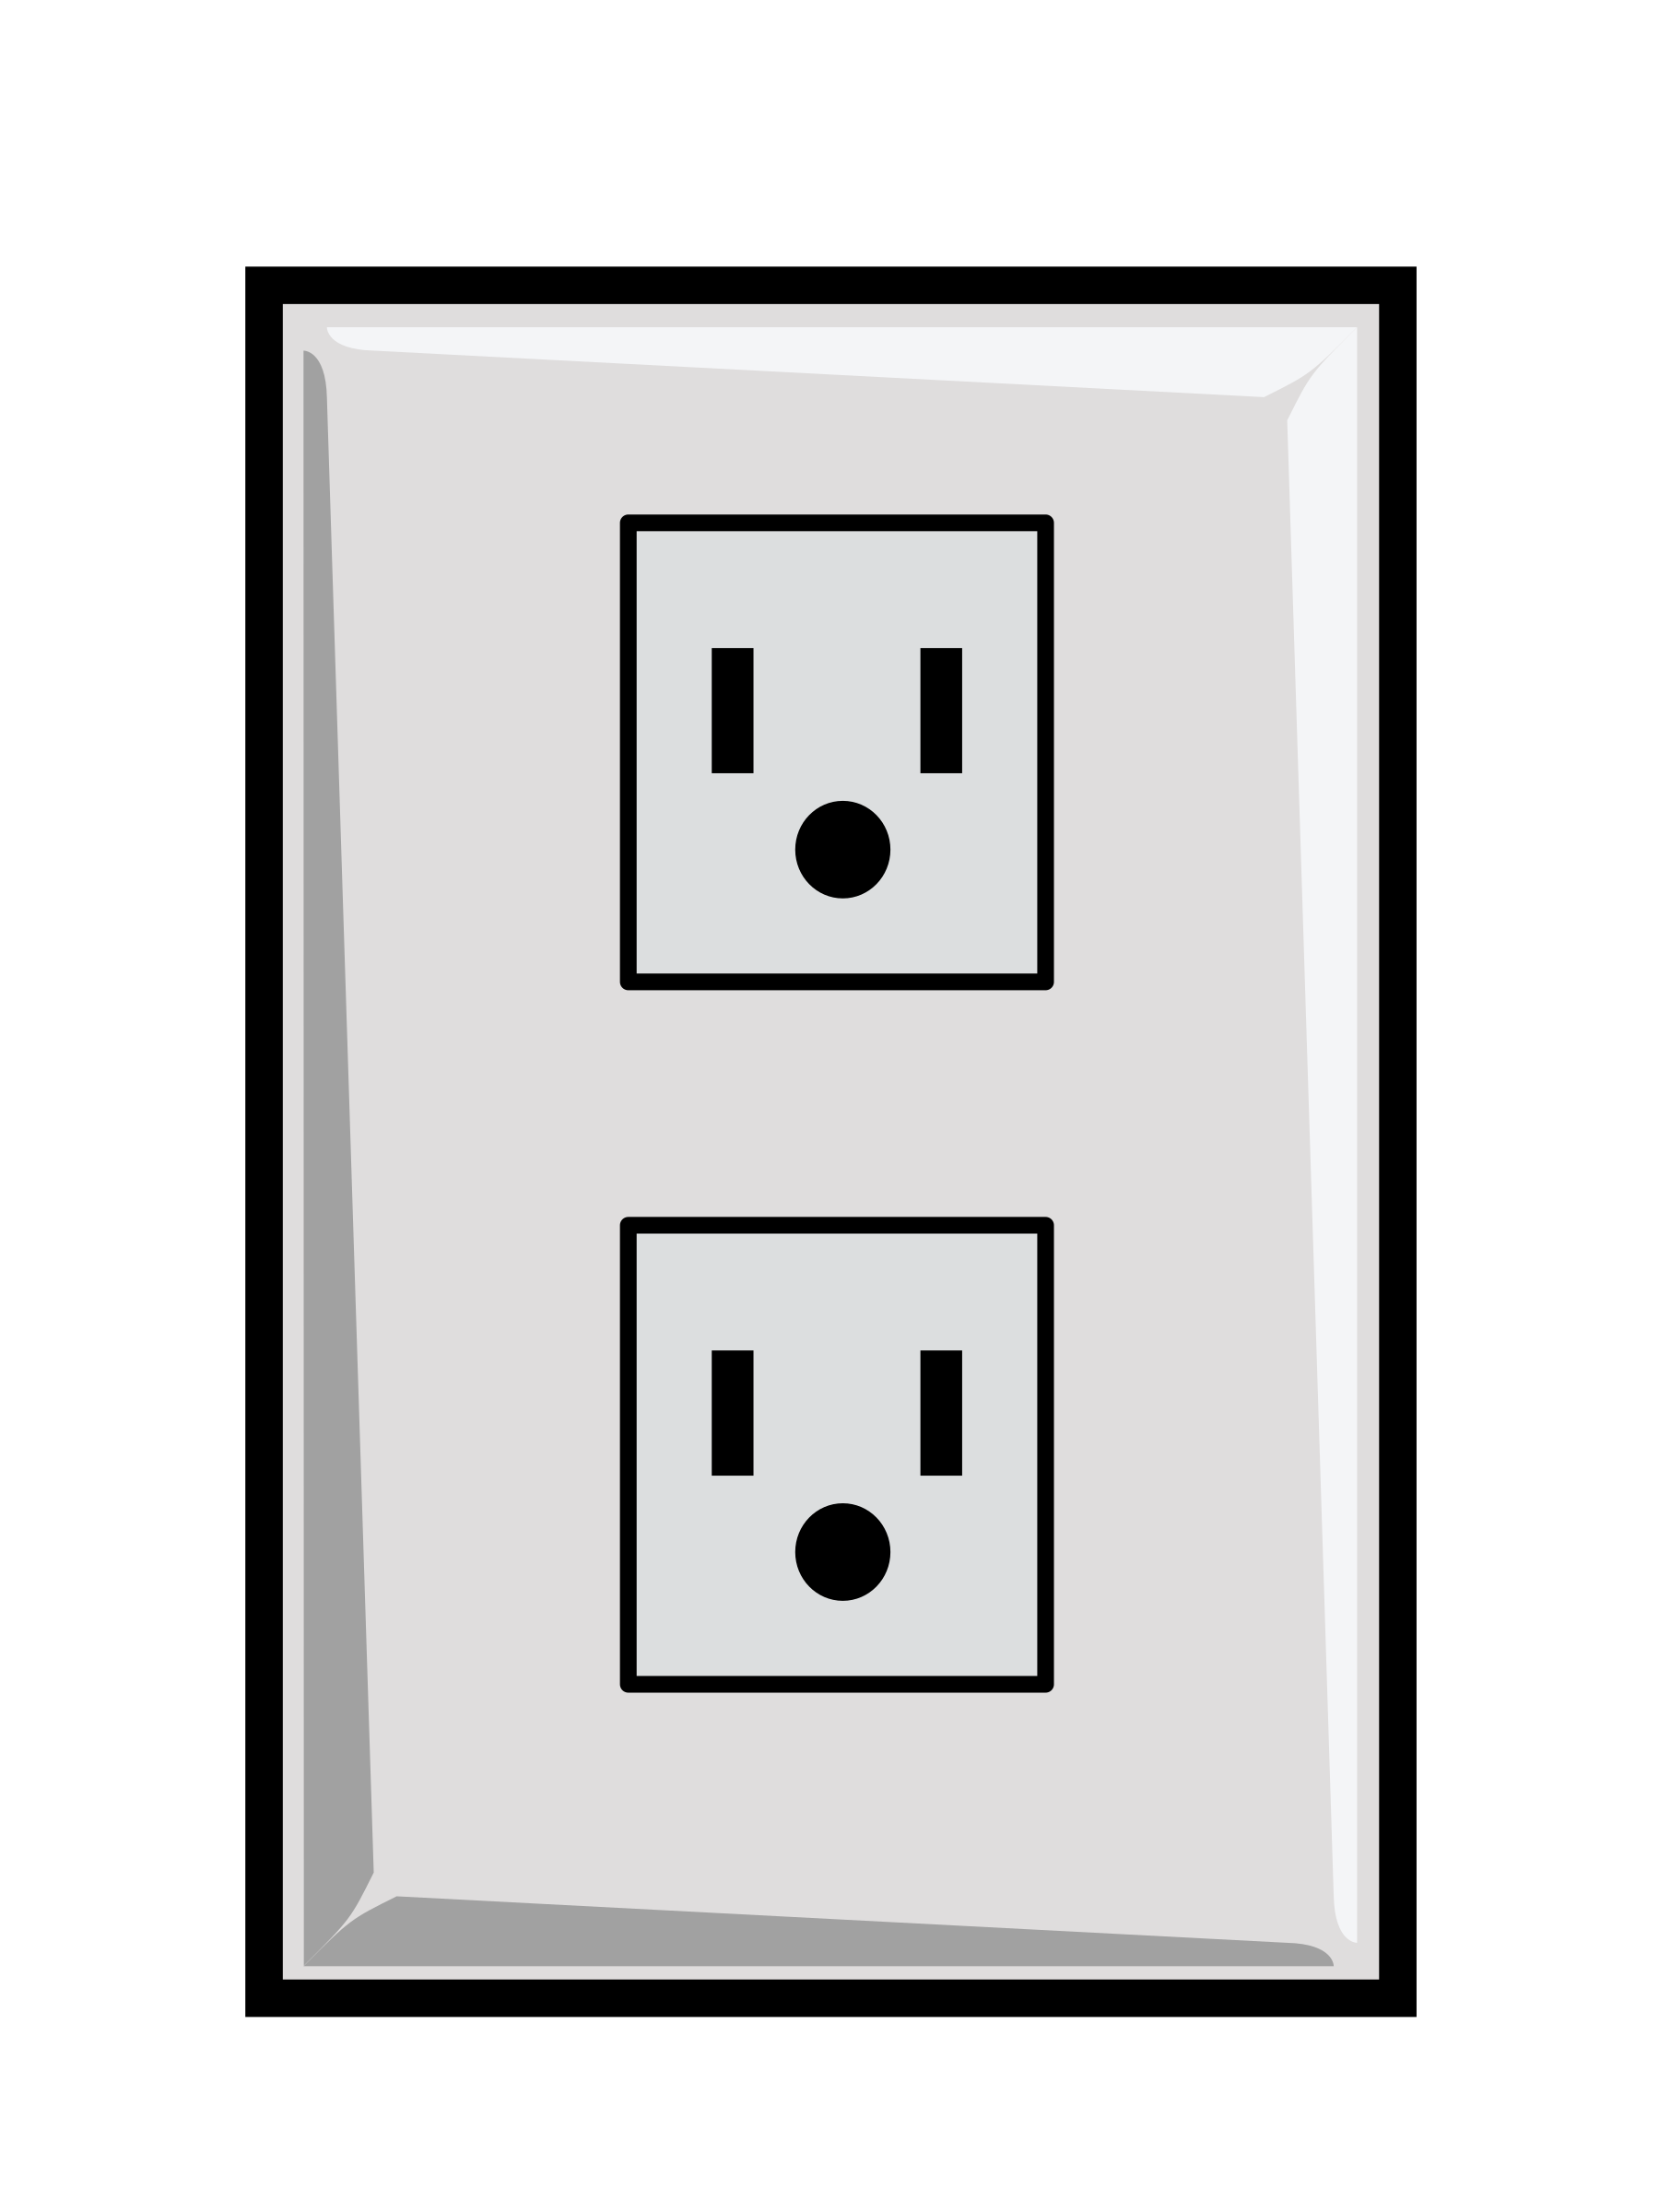 clip free Power free on dumielauxepices. Plug clipart plug point